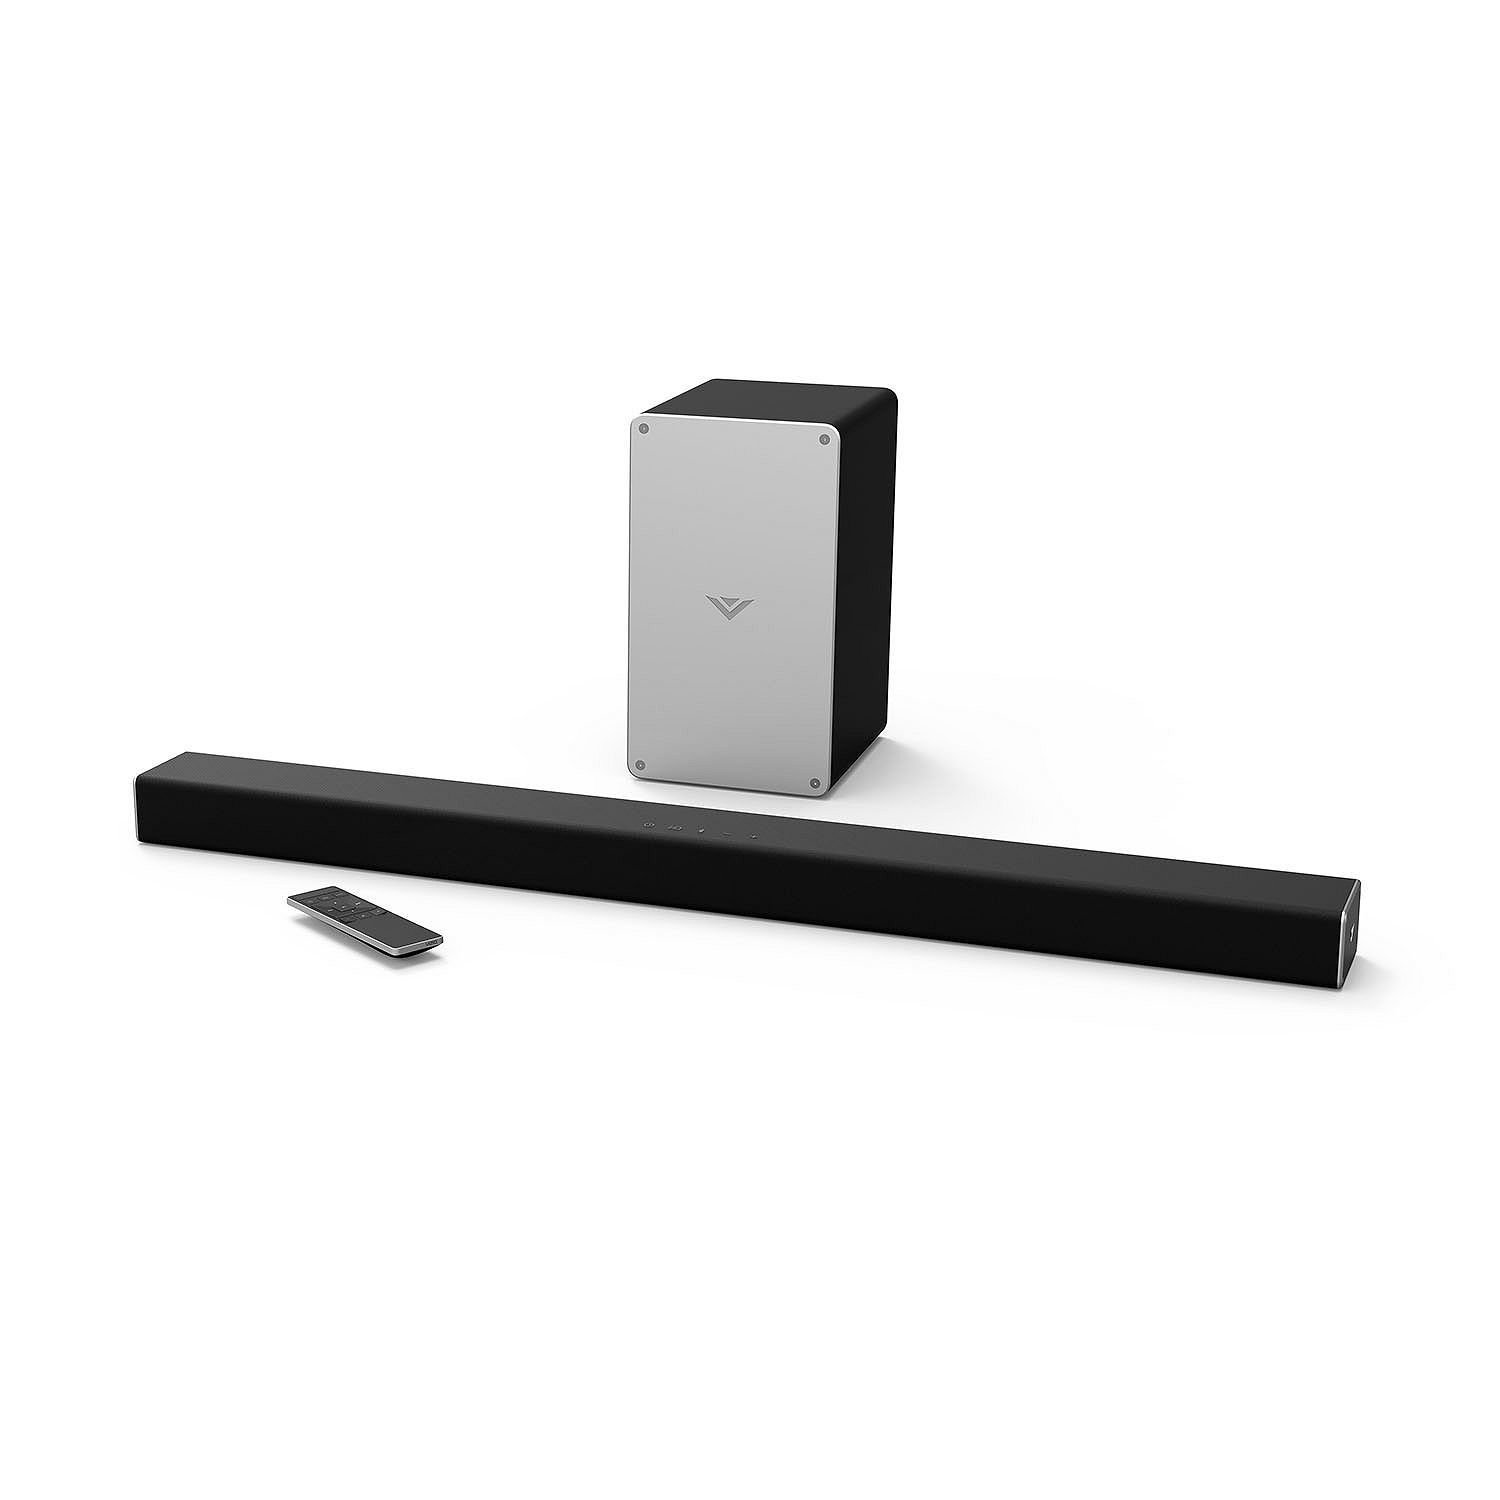 VIZIO SB3621N-E8 36 Inch 2.1 Channel Sound Bar System with Wireless Subwoofer